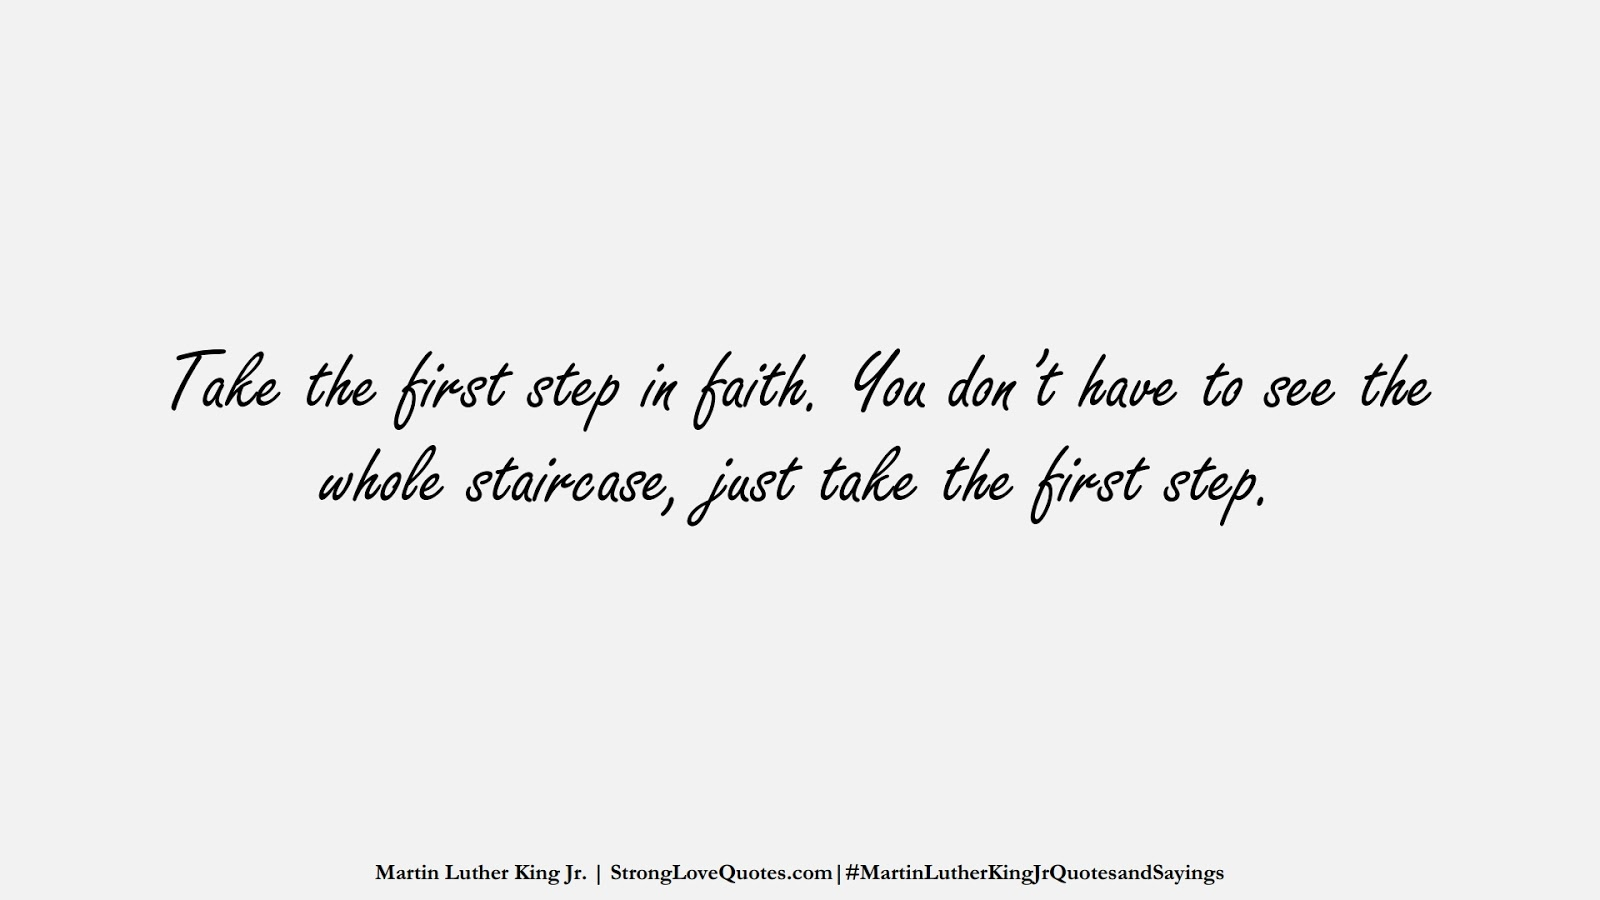 Take the first step in faith. You don't have to see the whole staircase, just take the first step. (Martin Luther King Jr.);  #MartinLutherKingJrQuotesandSayings